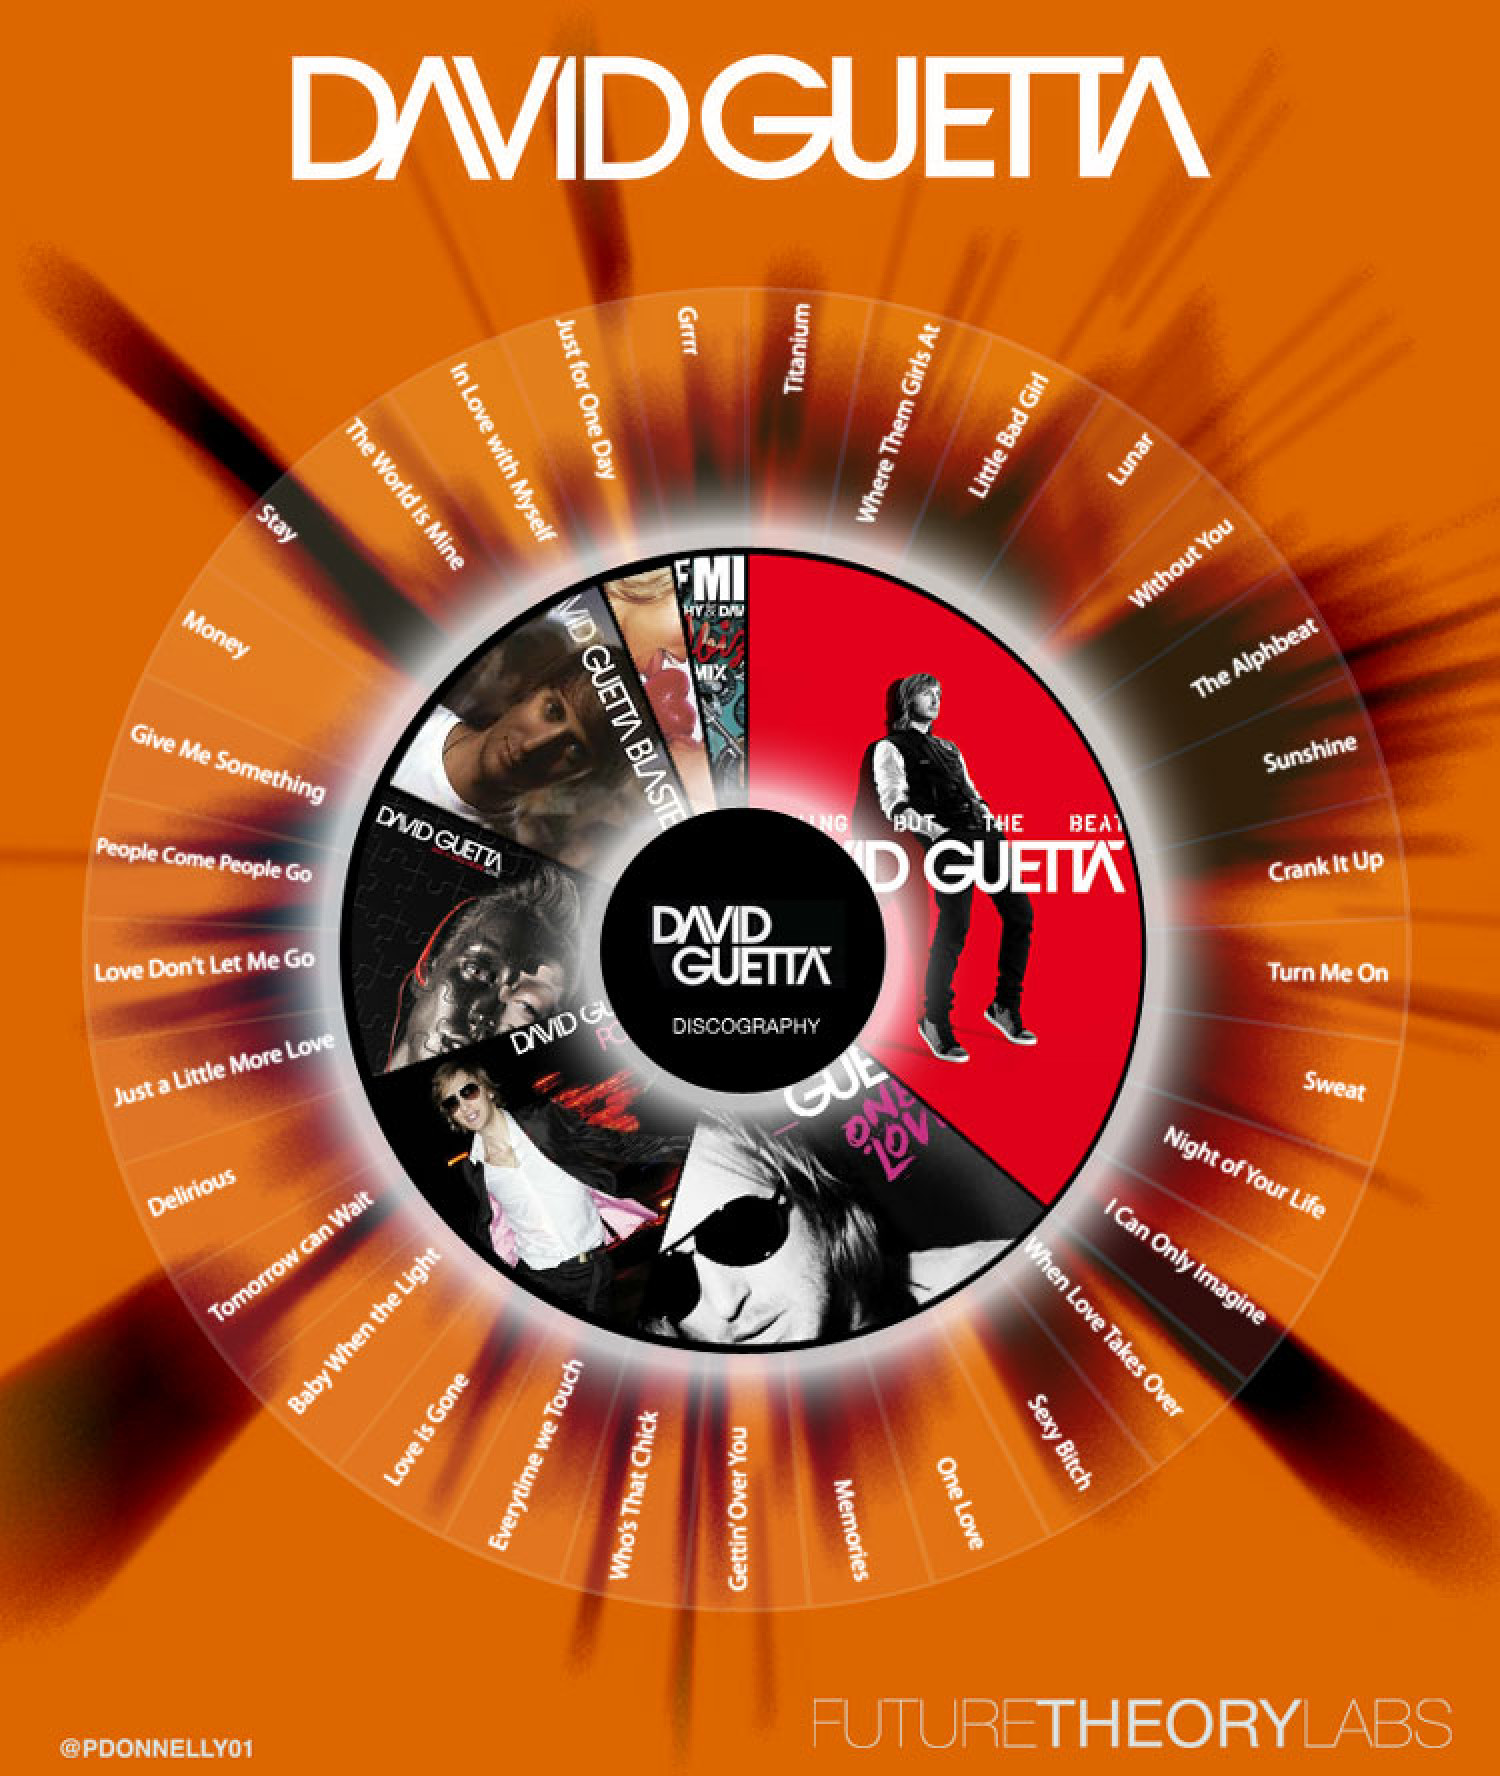 David Guetta - Discography 2  Infographic